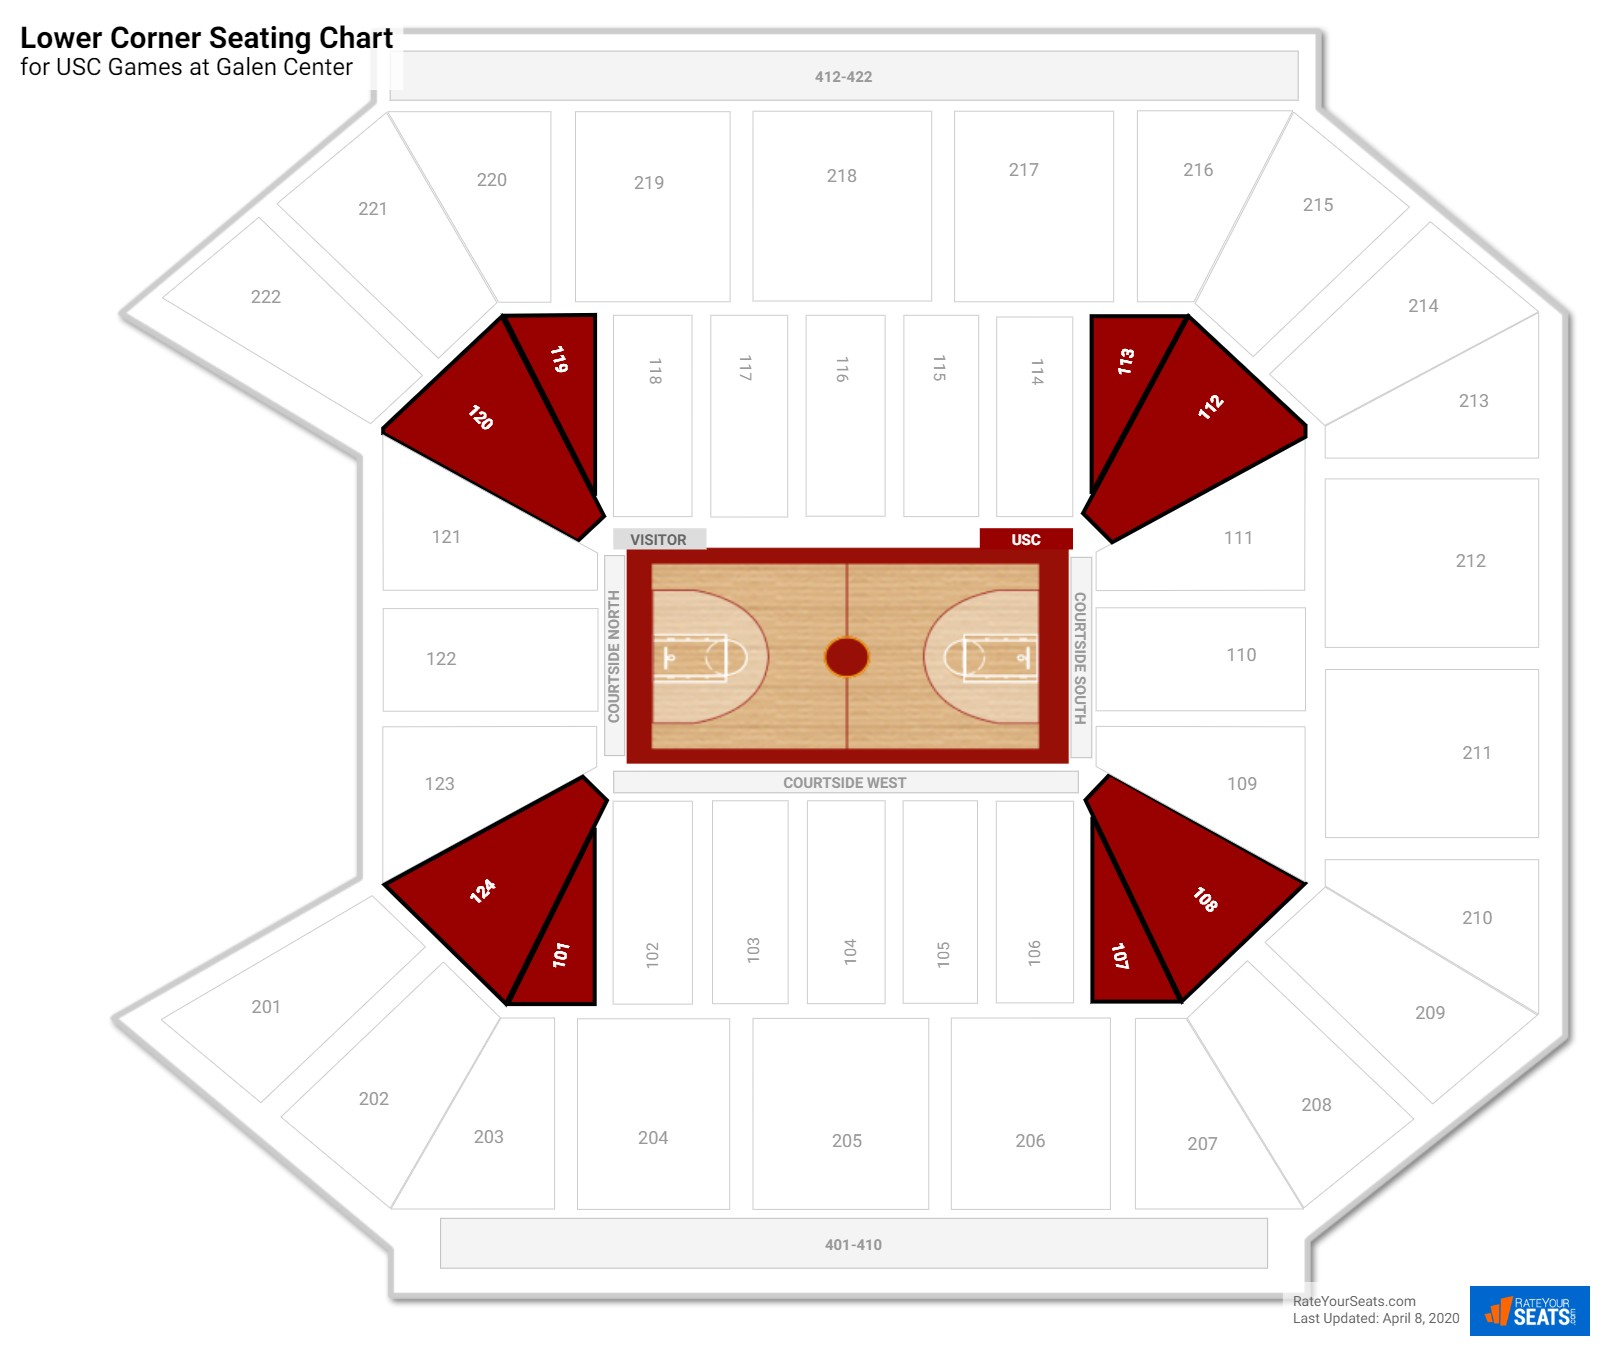 Galen Center Lower Corner seating chart